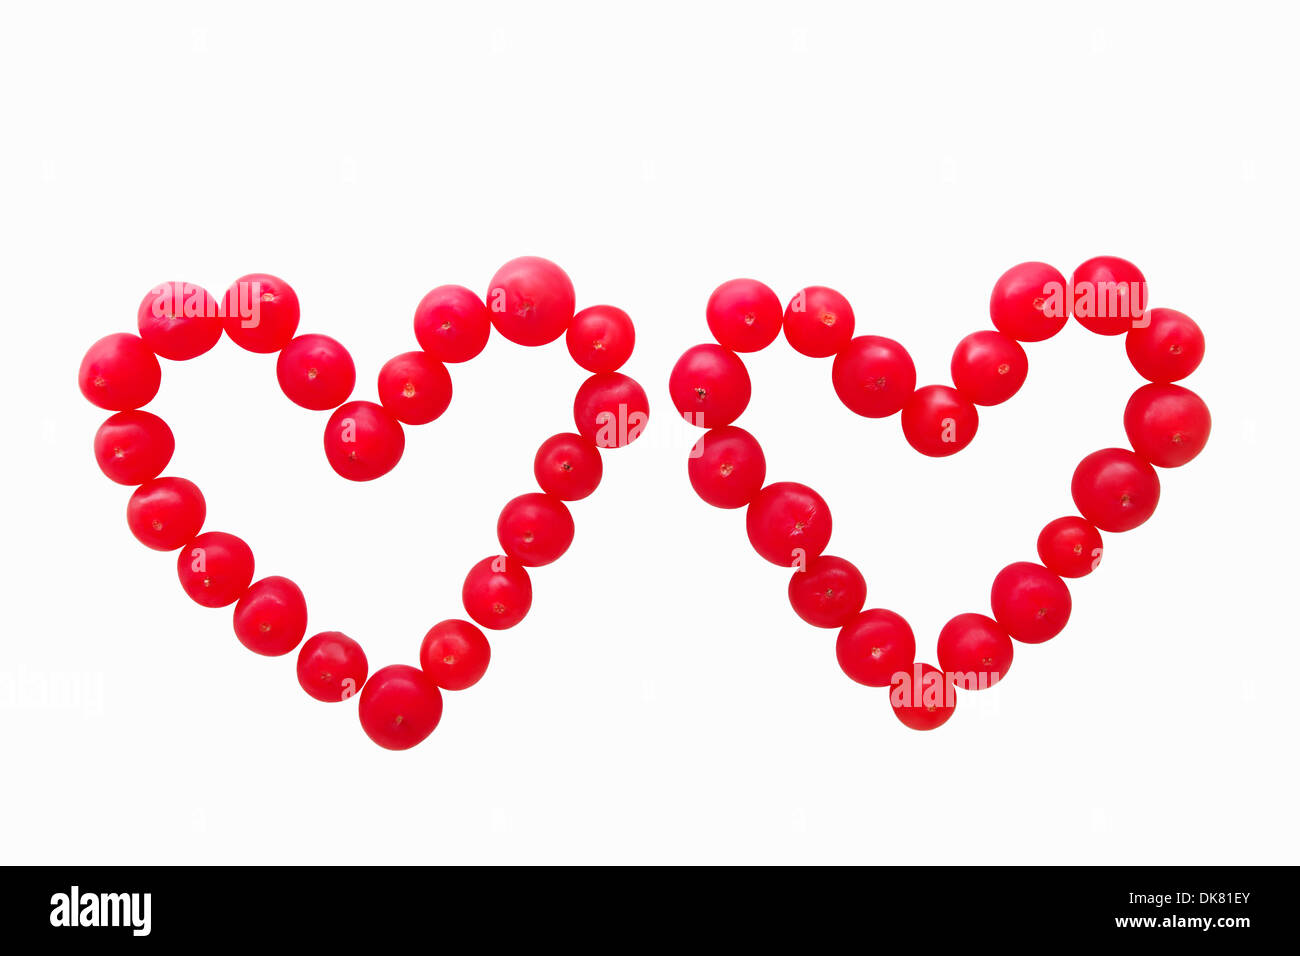 Valentine card concept. Red yew fruits forming two hearts, isolated on white background. - Stock Image